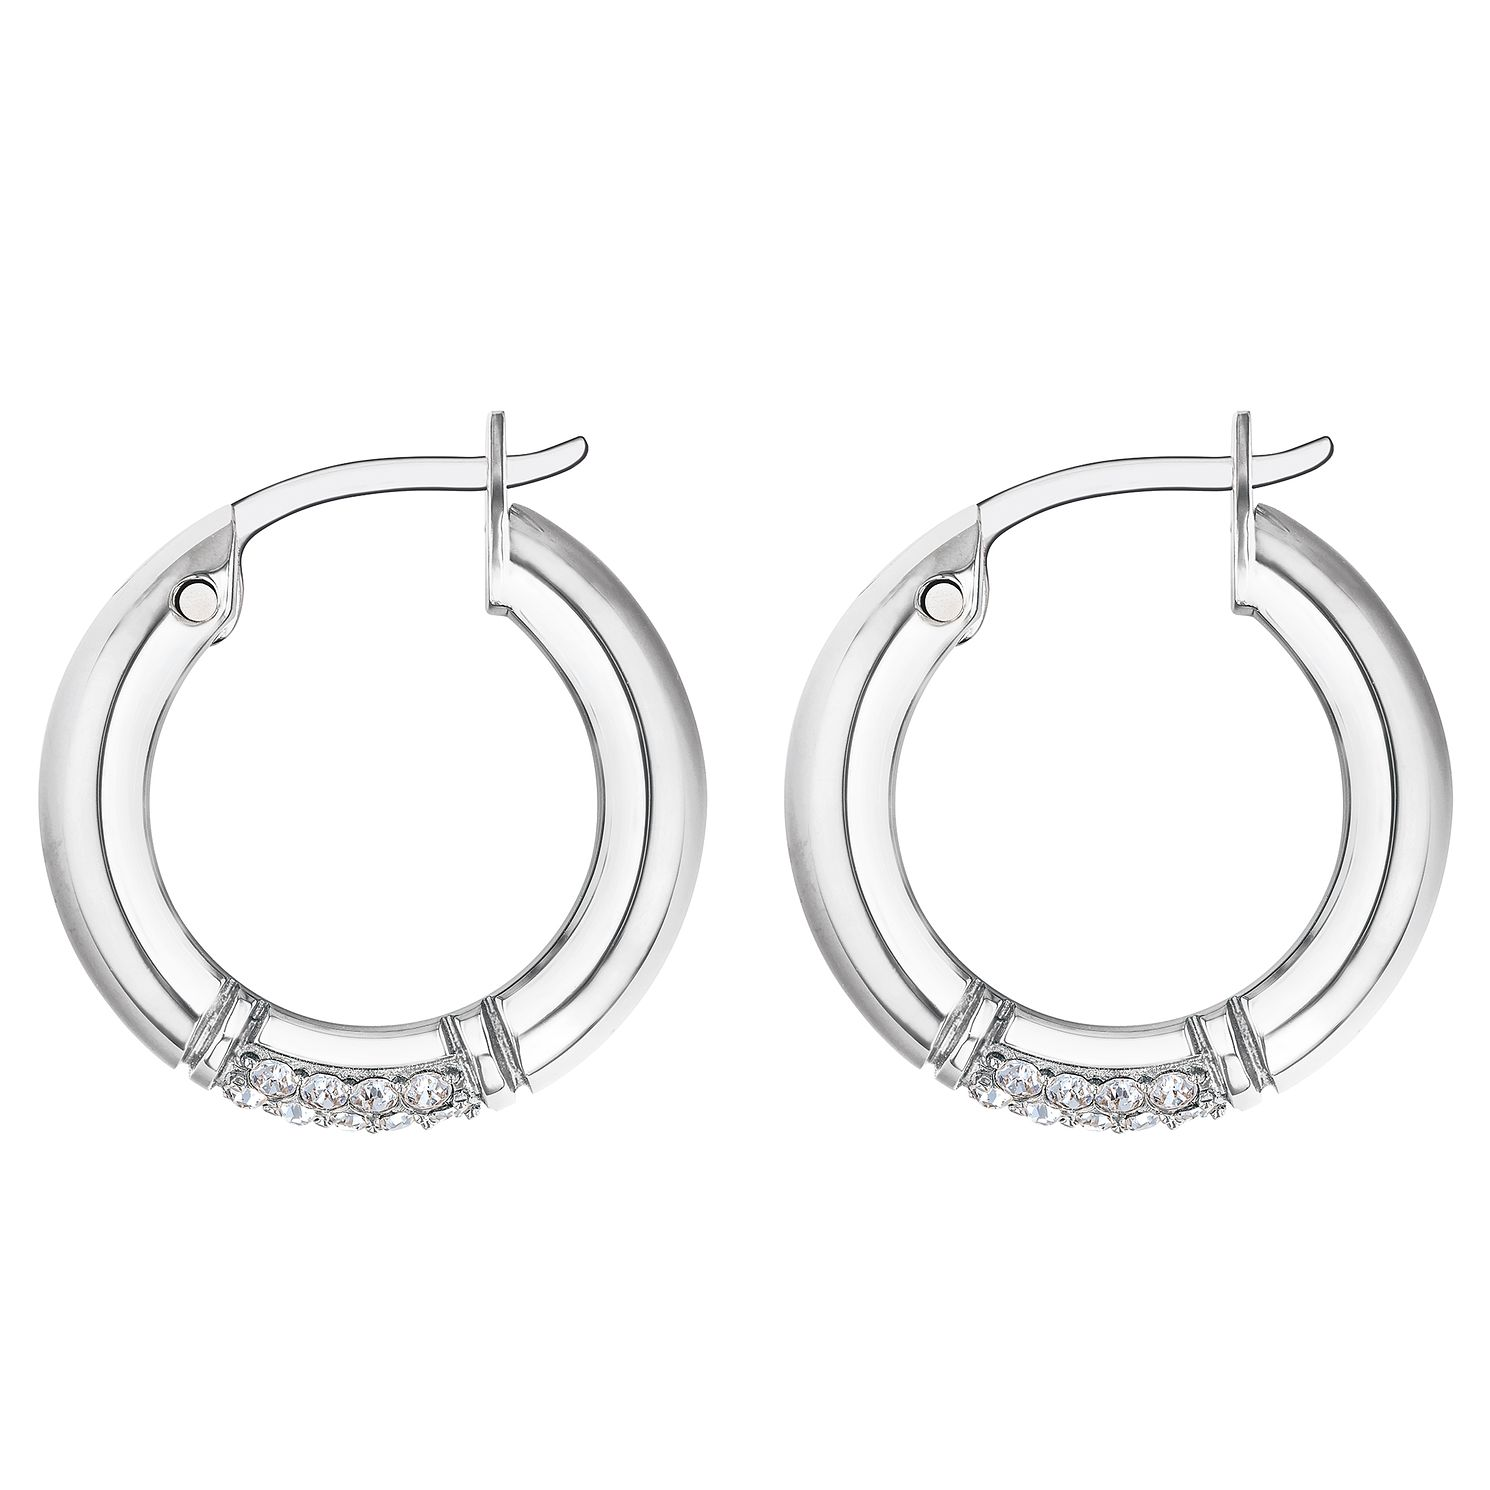 Tommy Hilfiger Silver Tone Crystal Hoop Earrings - Product number 3424197